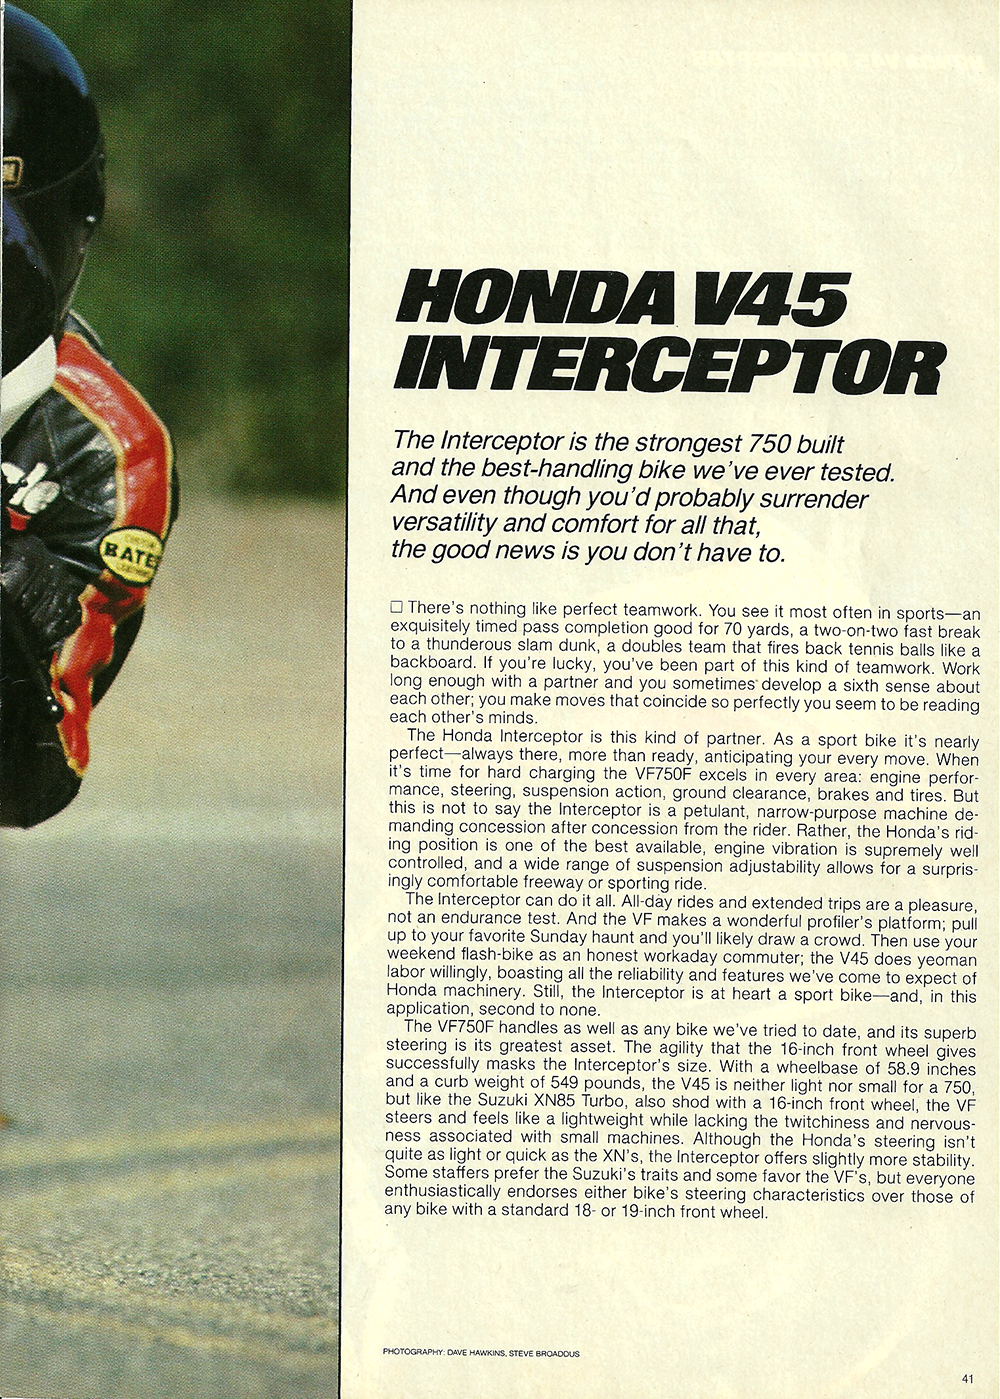 1983 Honda V45 Interceptor road test 02.jpg